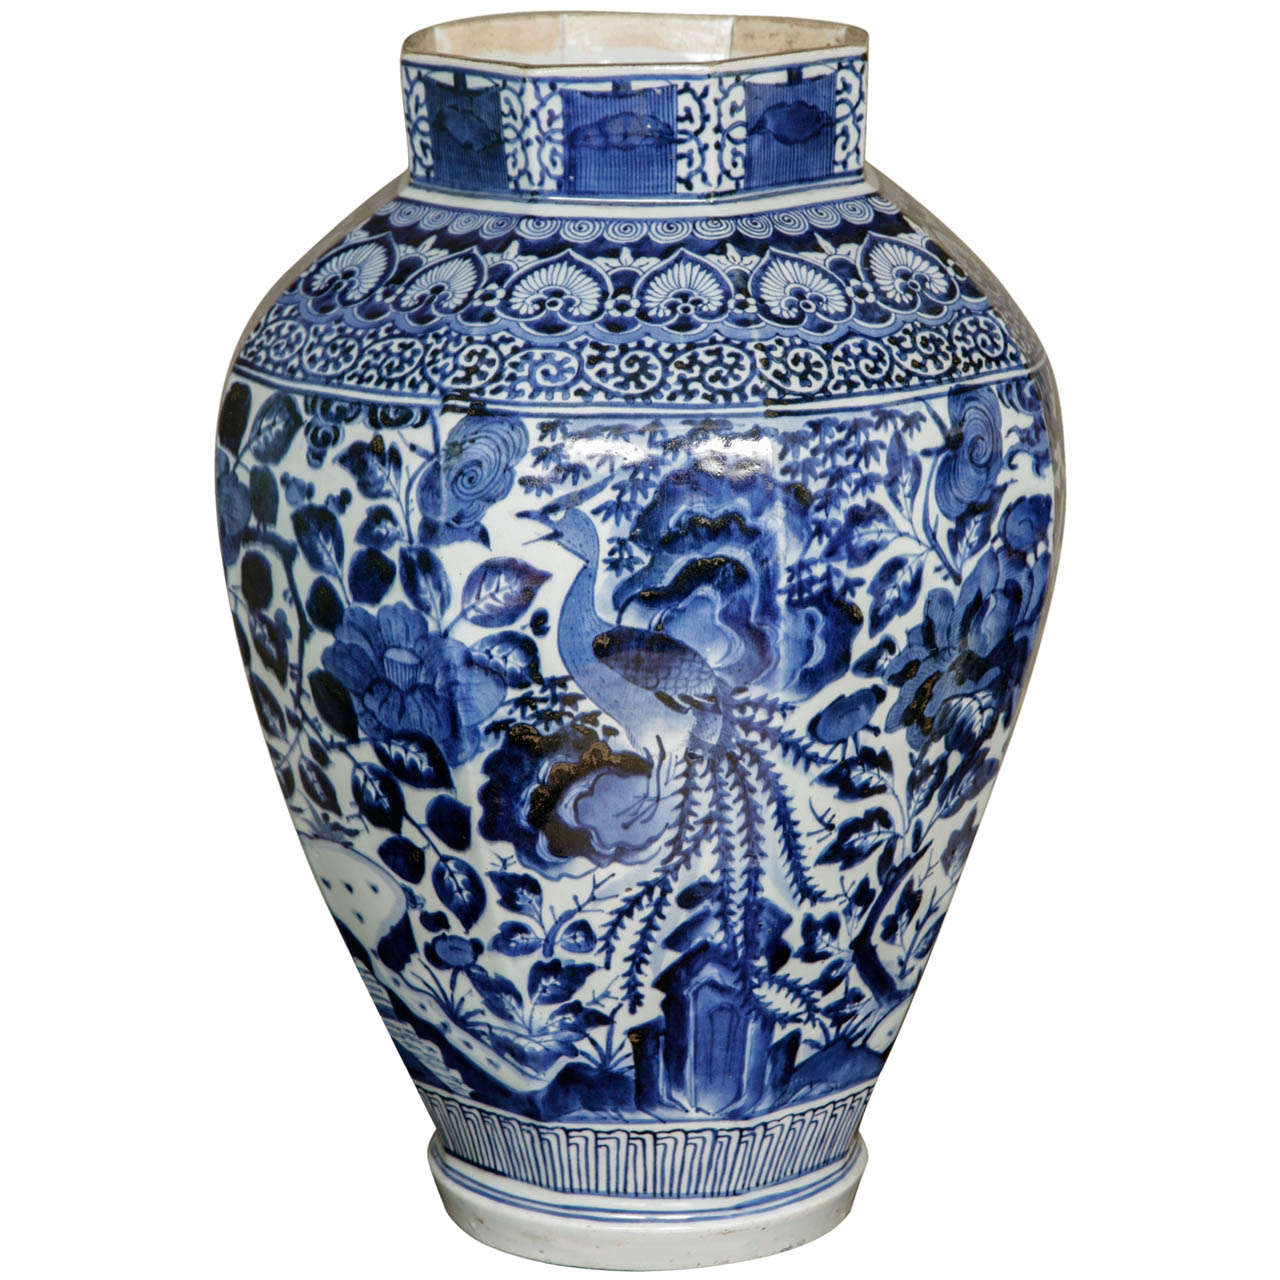 A Huge 17th Century Anese Octagonal Arita Blue White Vase Circa 1680 For